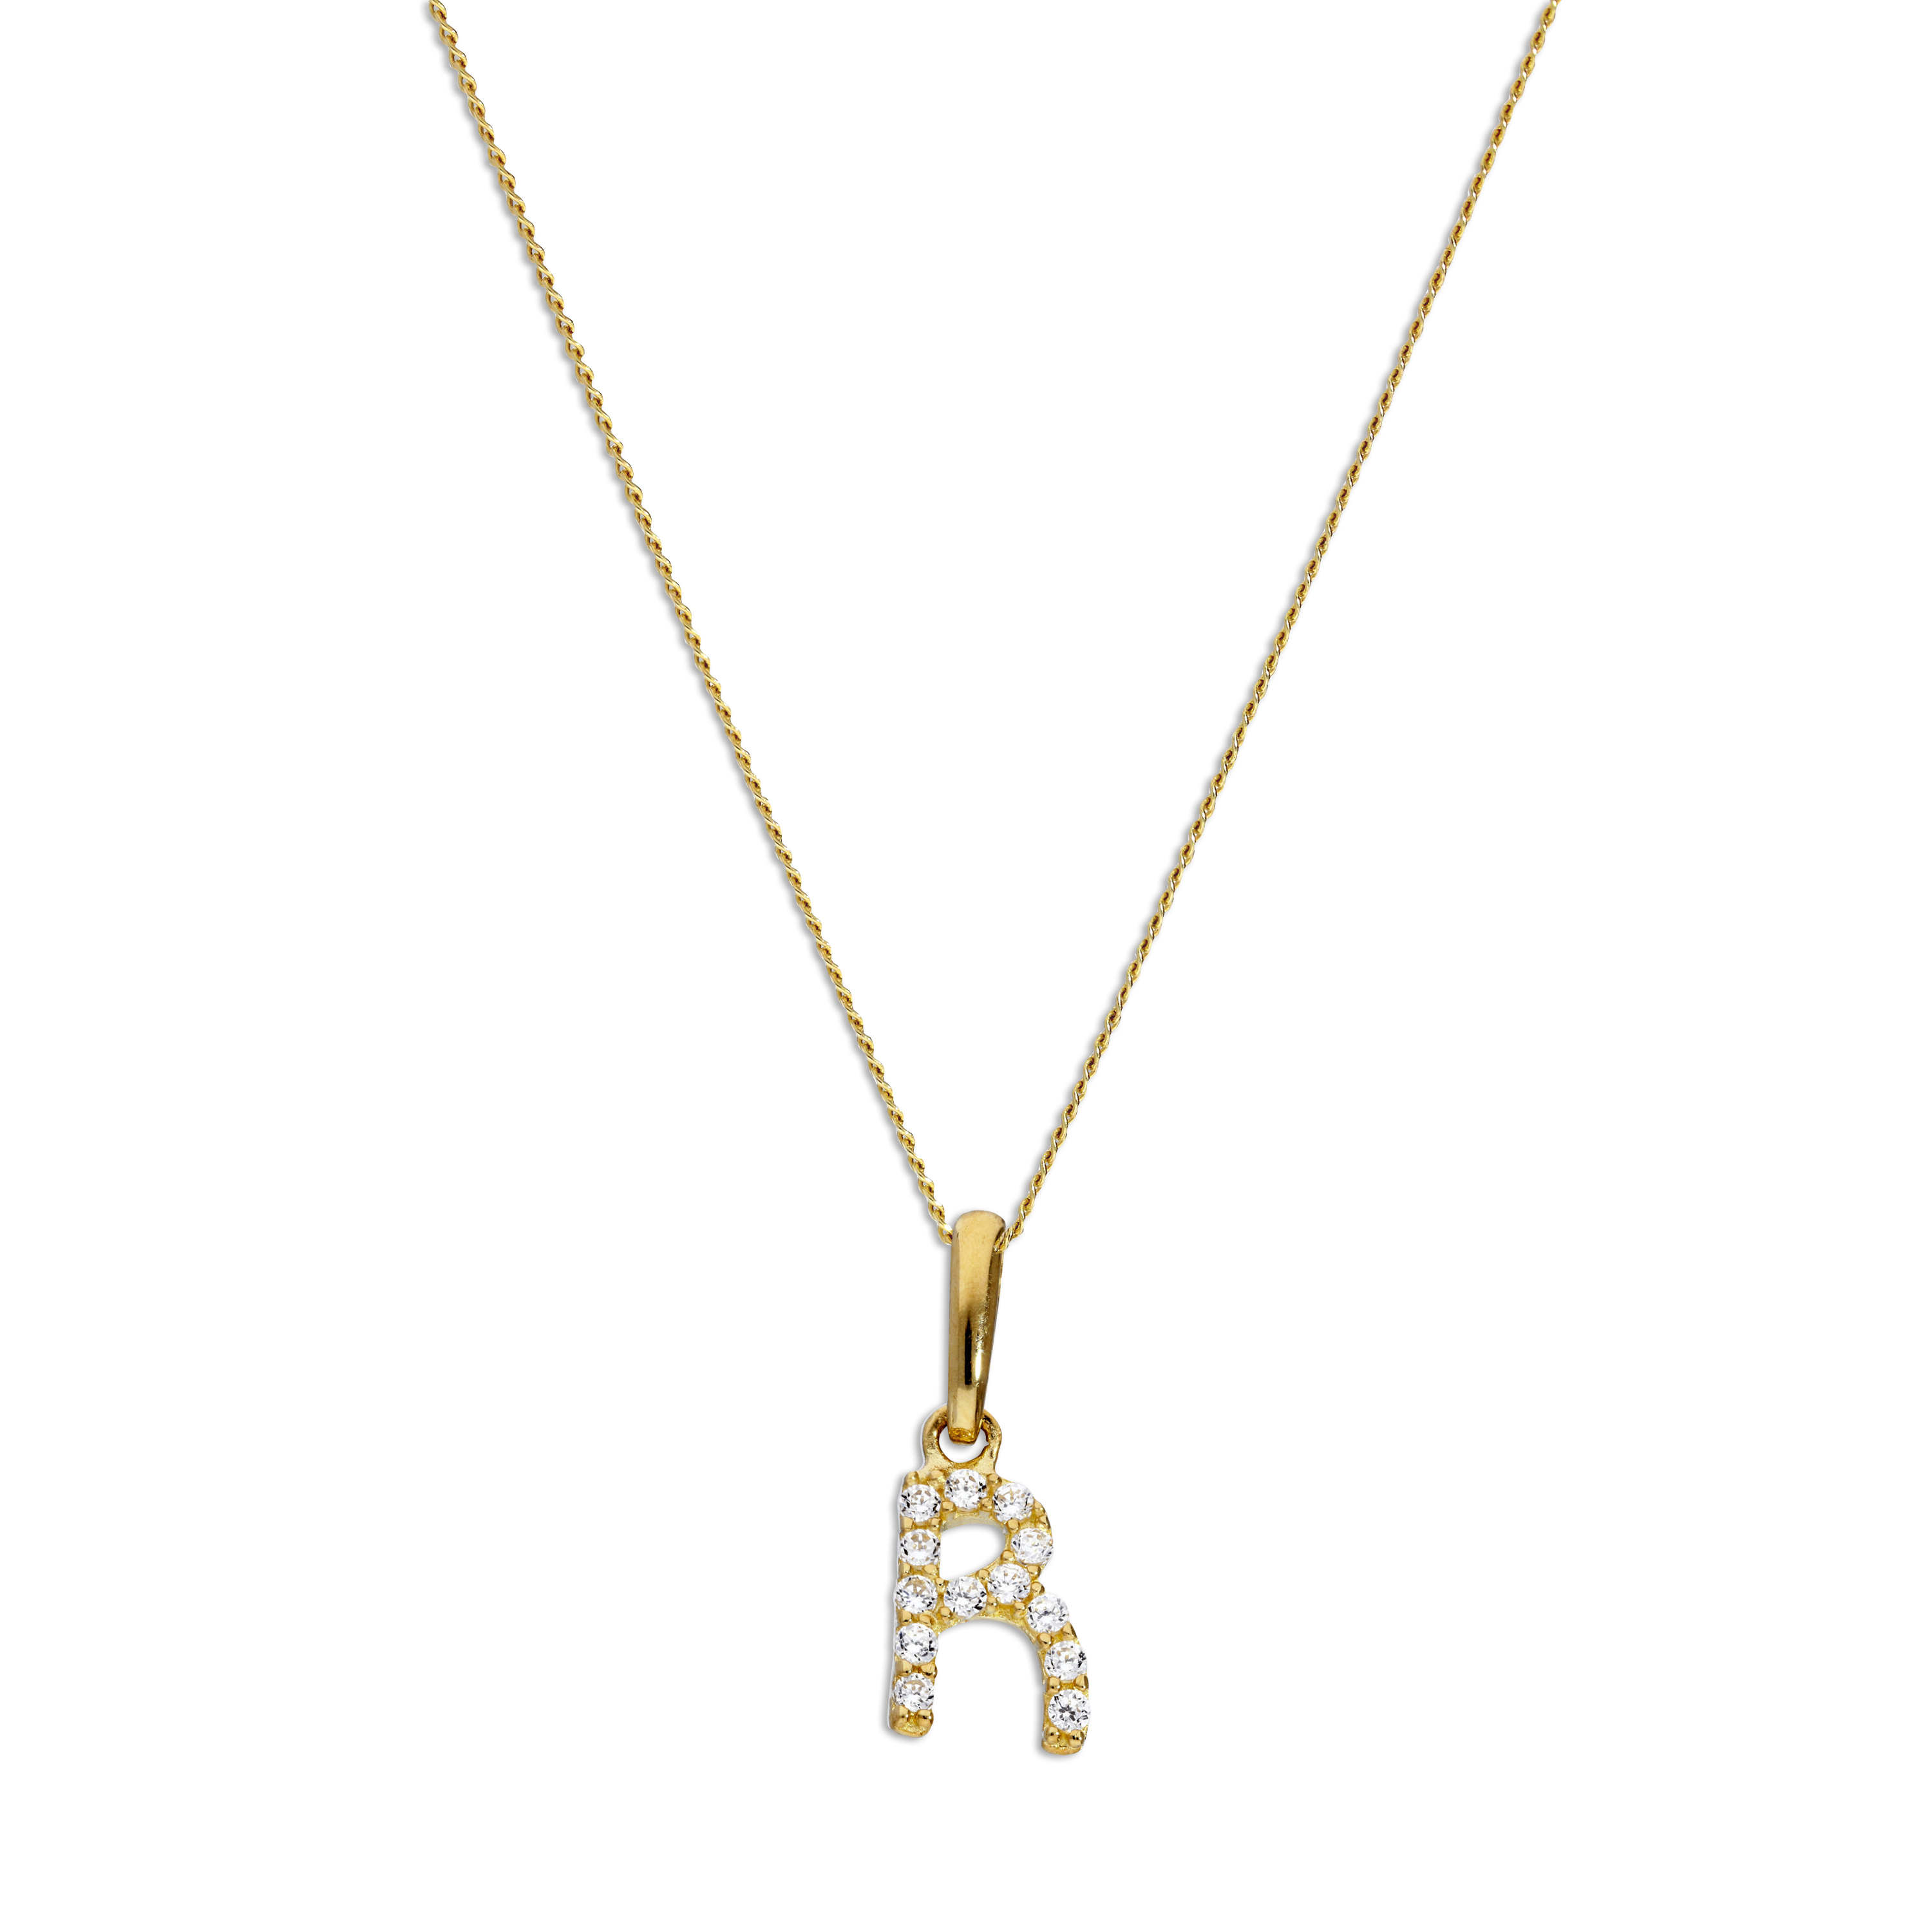 An image of 9ct Gold Clear CZ Crystal Script Alphabet Letter R Necklace 16 20 Inches